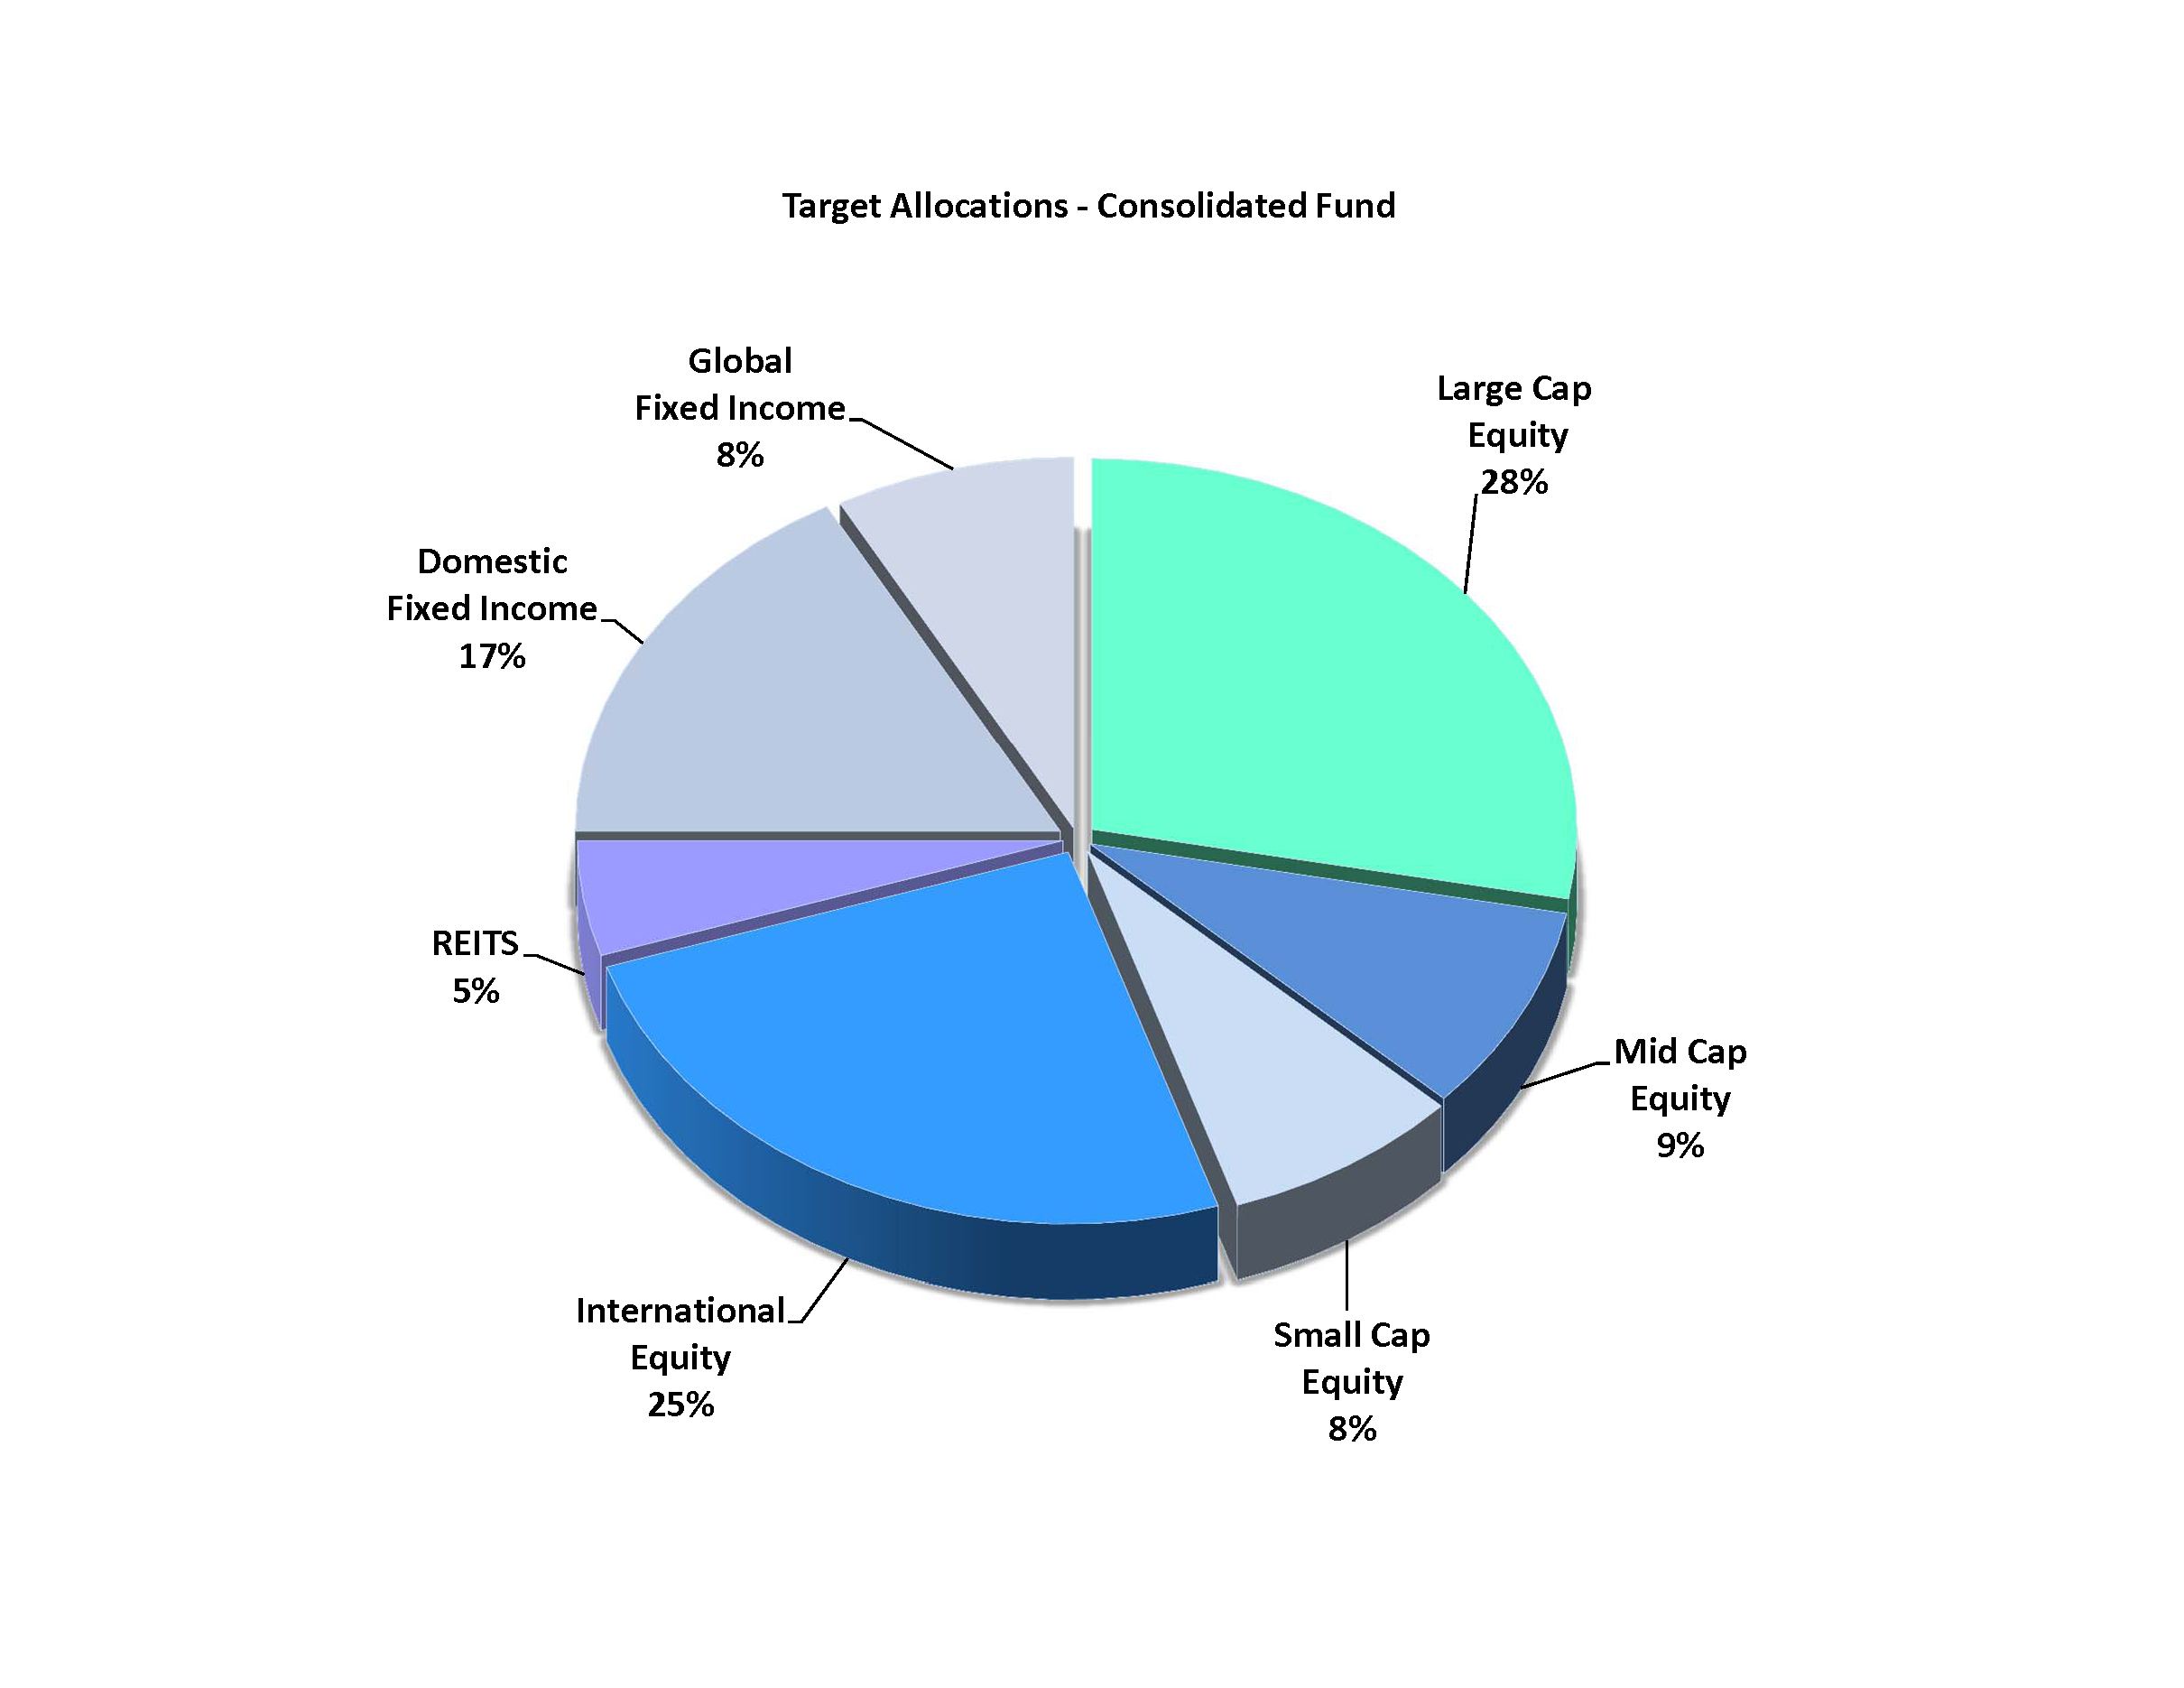 CONS Target Allocations Pie Chart